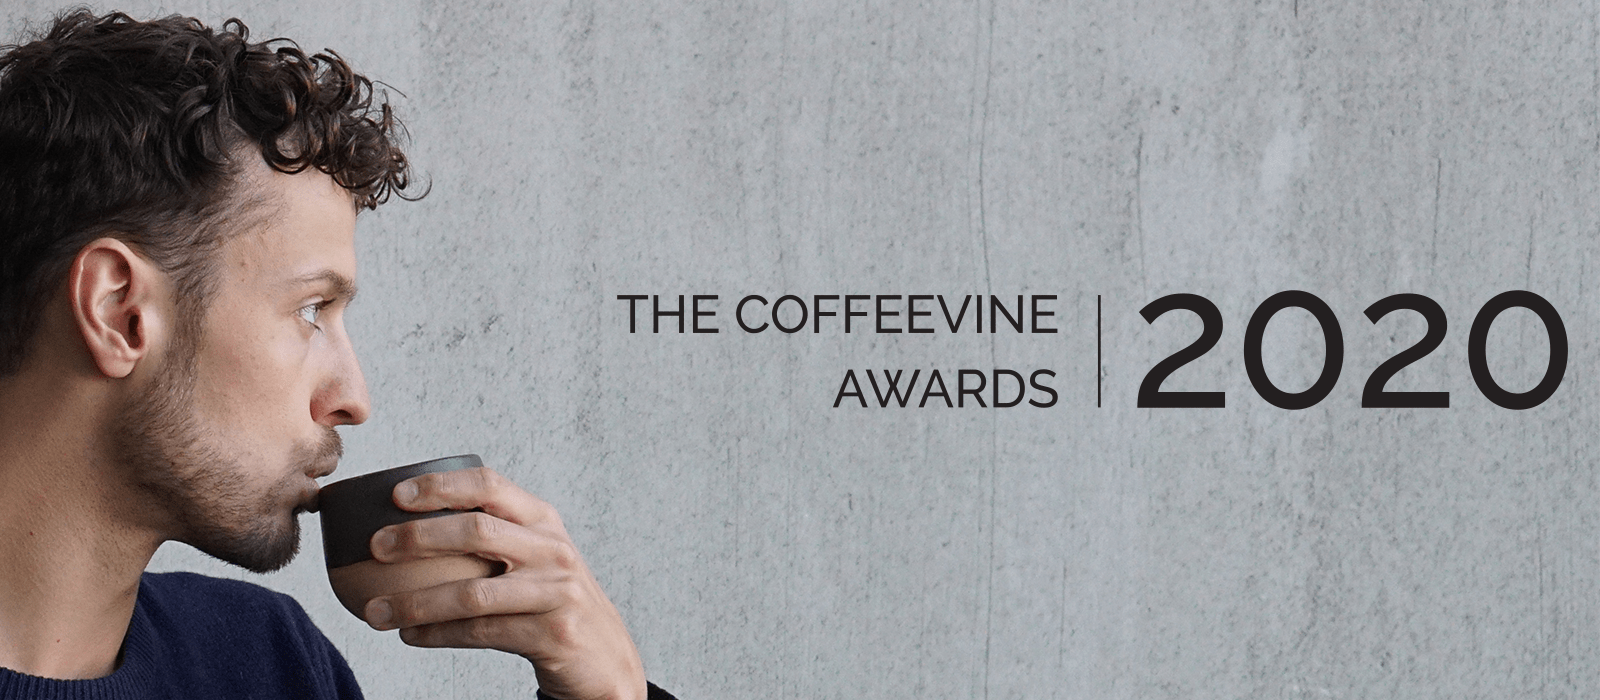 The-Coffeevinevine-Awards-2020